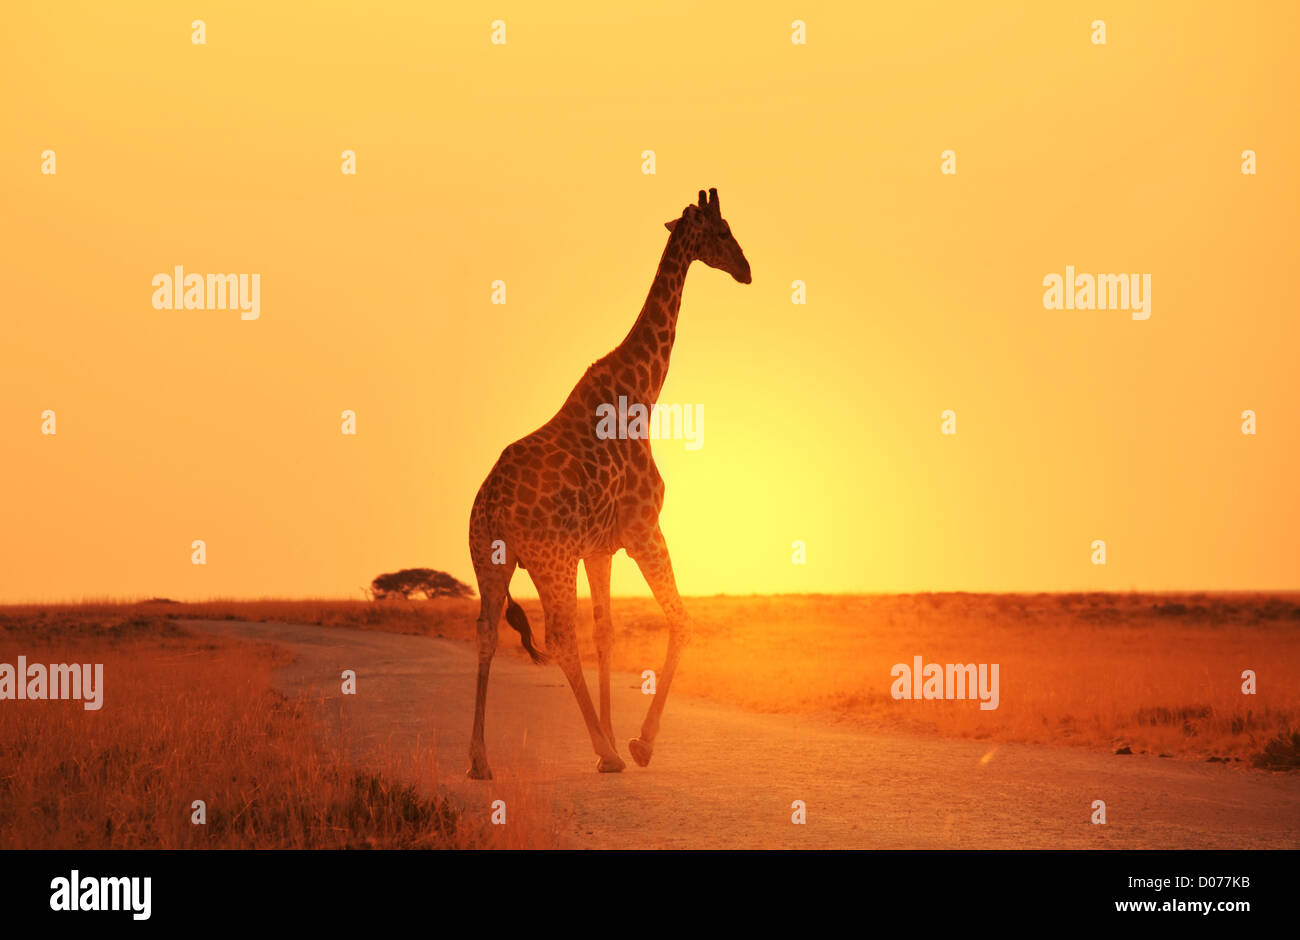 Girafe dans la savane Photo Stock